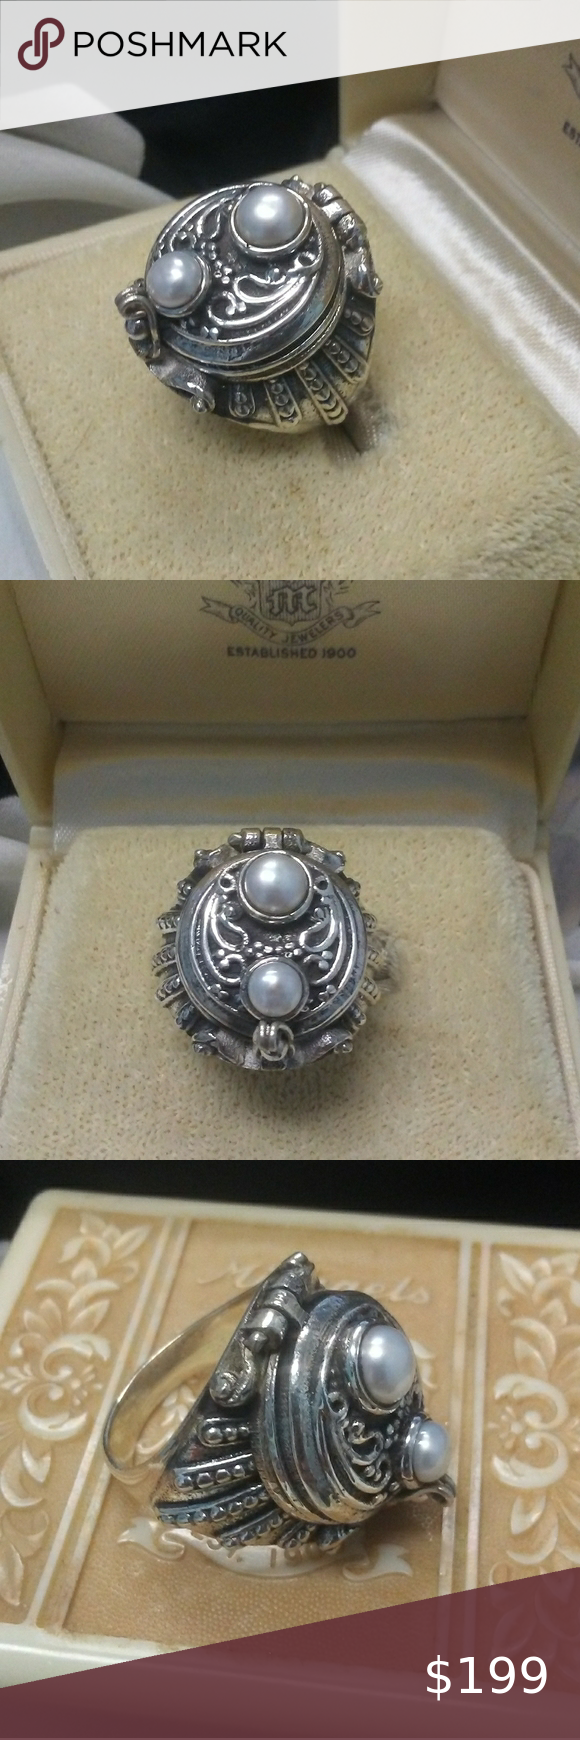 Vintage 925 REAL Pearls Poison Ring Gorgeous Vintage 925 Sterling Silver genuine cultured pearls Poison Ring. In Excellent Vintage Condition. Size 6.5. Item (088) Vintage Jewelry Rings